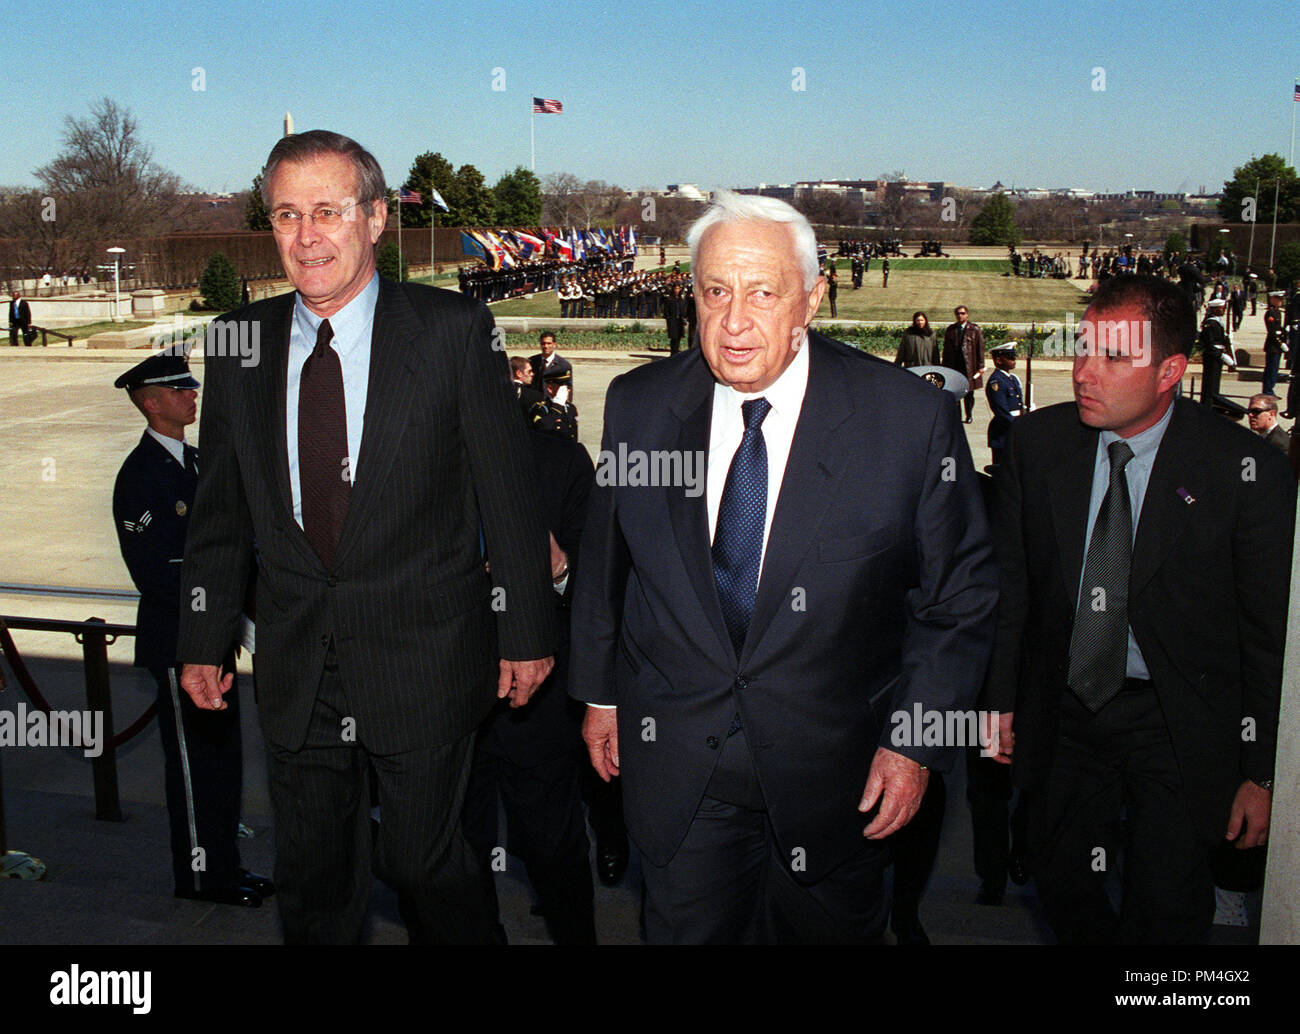 Secretary of Defense Donald H. Rumsfeld (left), escorts Israeli Prime Minister Ariel Sharon (center) into the Pentagon at the conclusion of a full honor arrival ceremony for Sharon at the Pentagon on March 19, 2001.  Rumsfeld and Sharon will meet to discuss regional and international security issues of interest to both nations.  DoD photo by R. D. Ward.  (Released)   File Reference # 1003_127THA - Stock Image